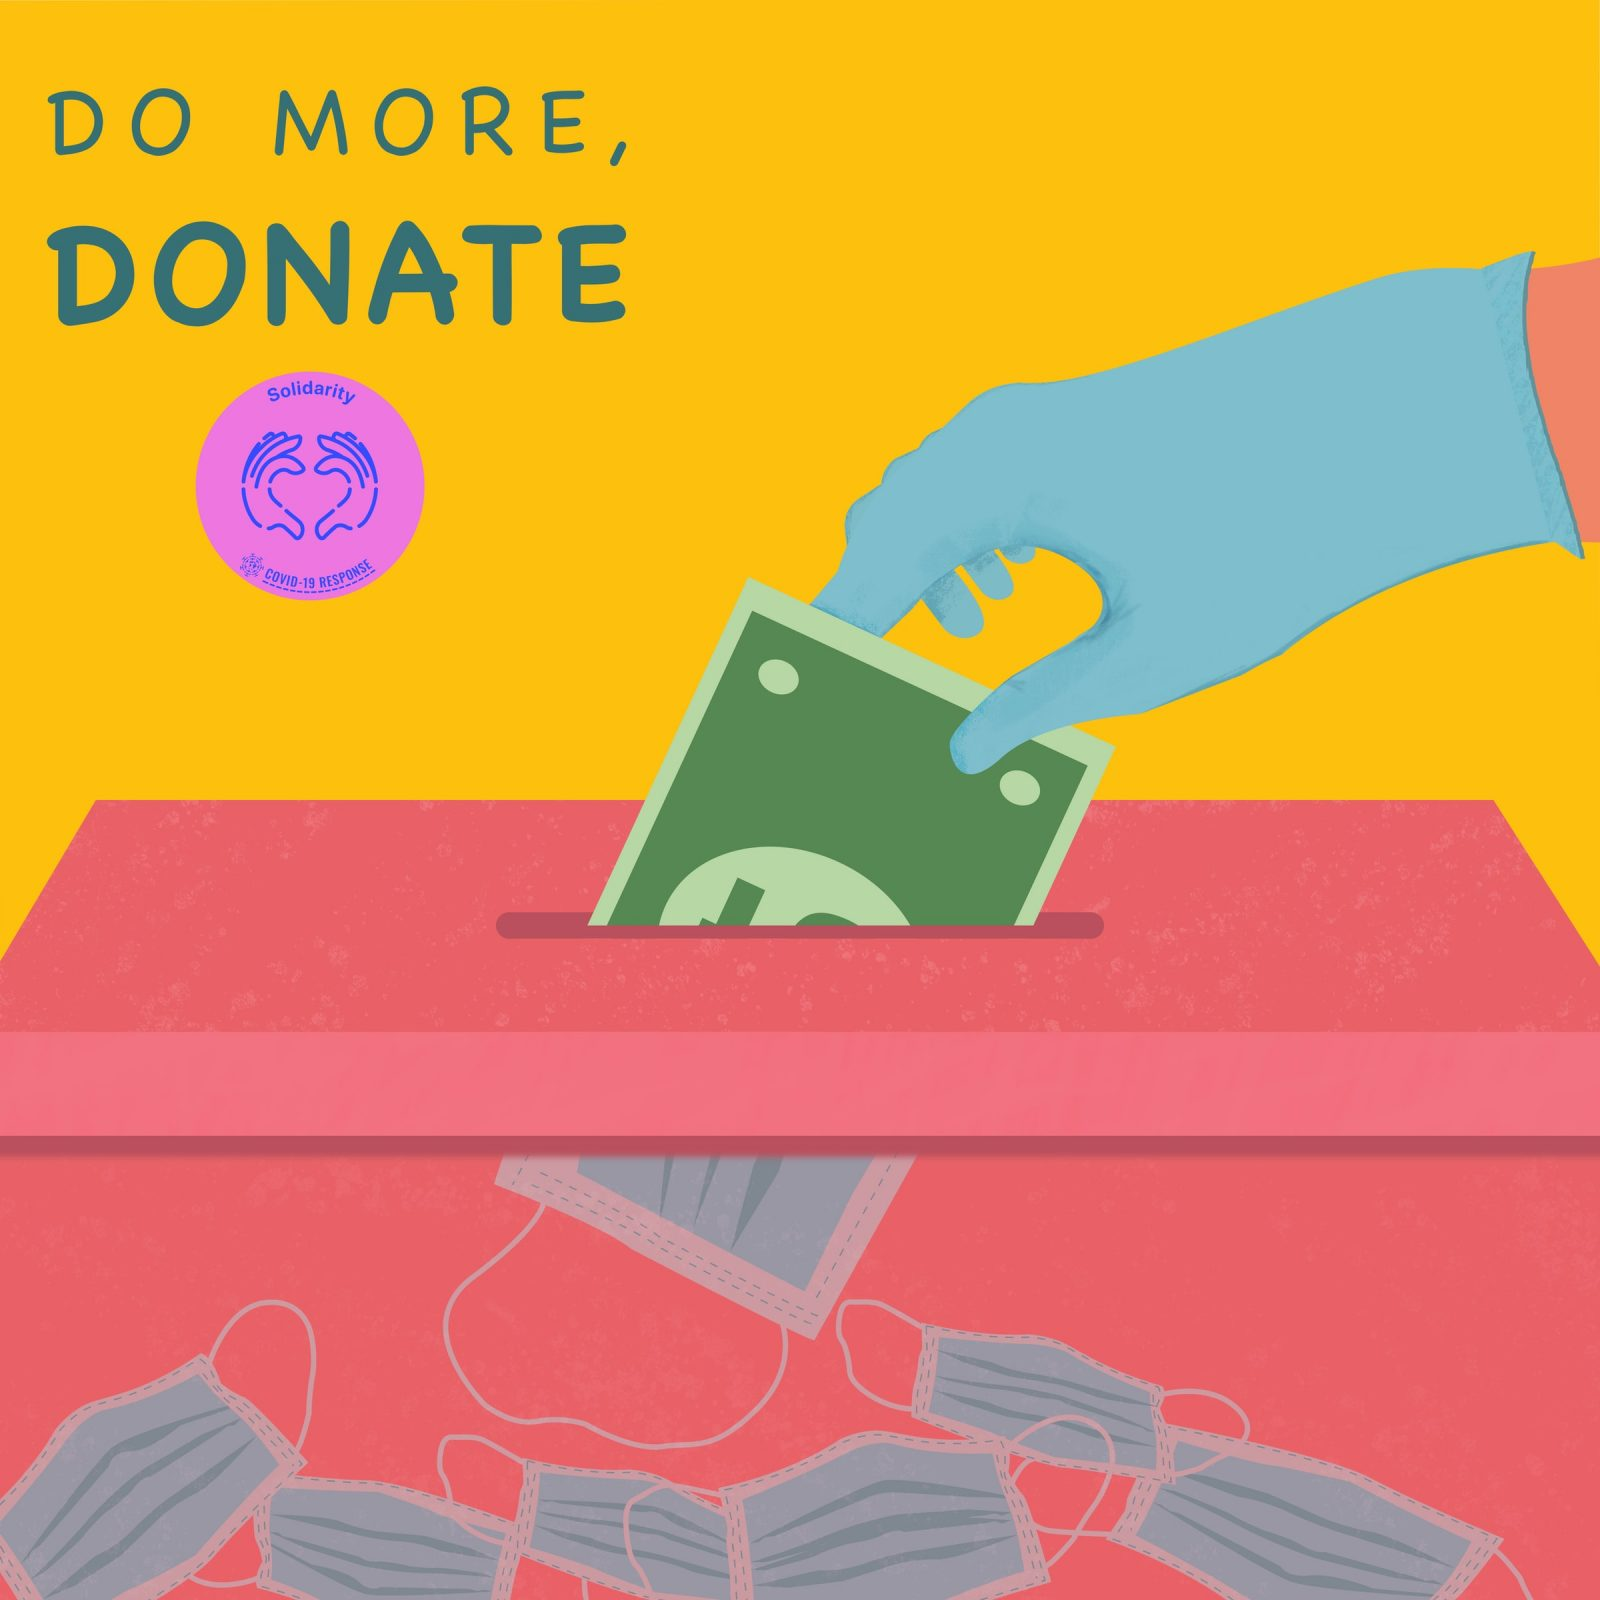 Can The Media Influence You To Donate Generously?